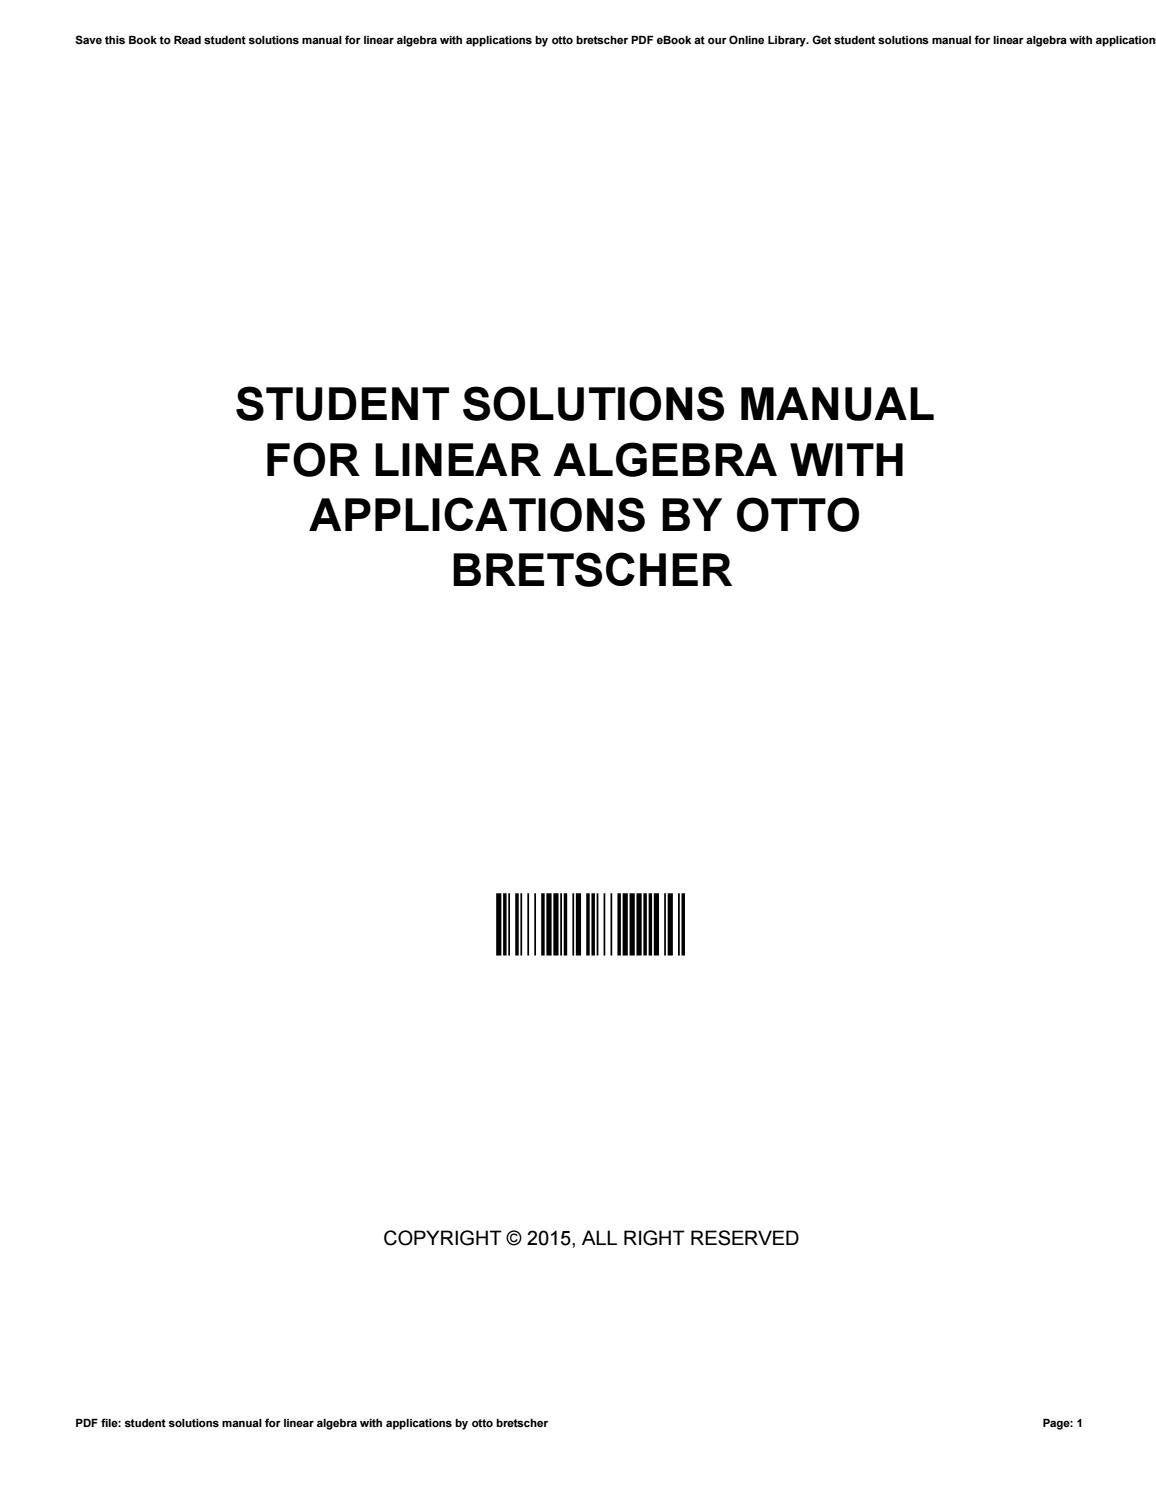 Student solutions manual for linear algebra with applications by otto  bretscher by rblx608 - issuu